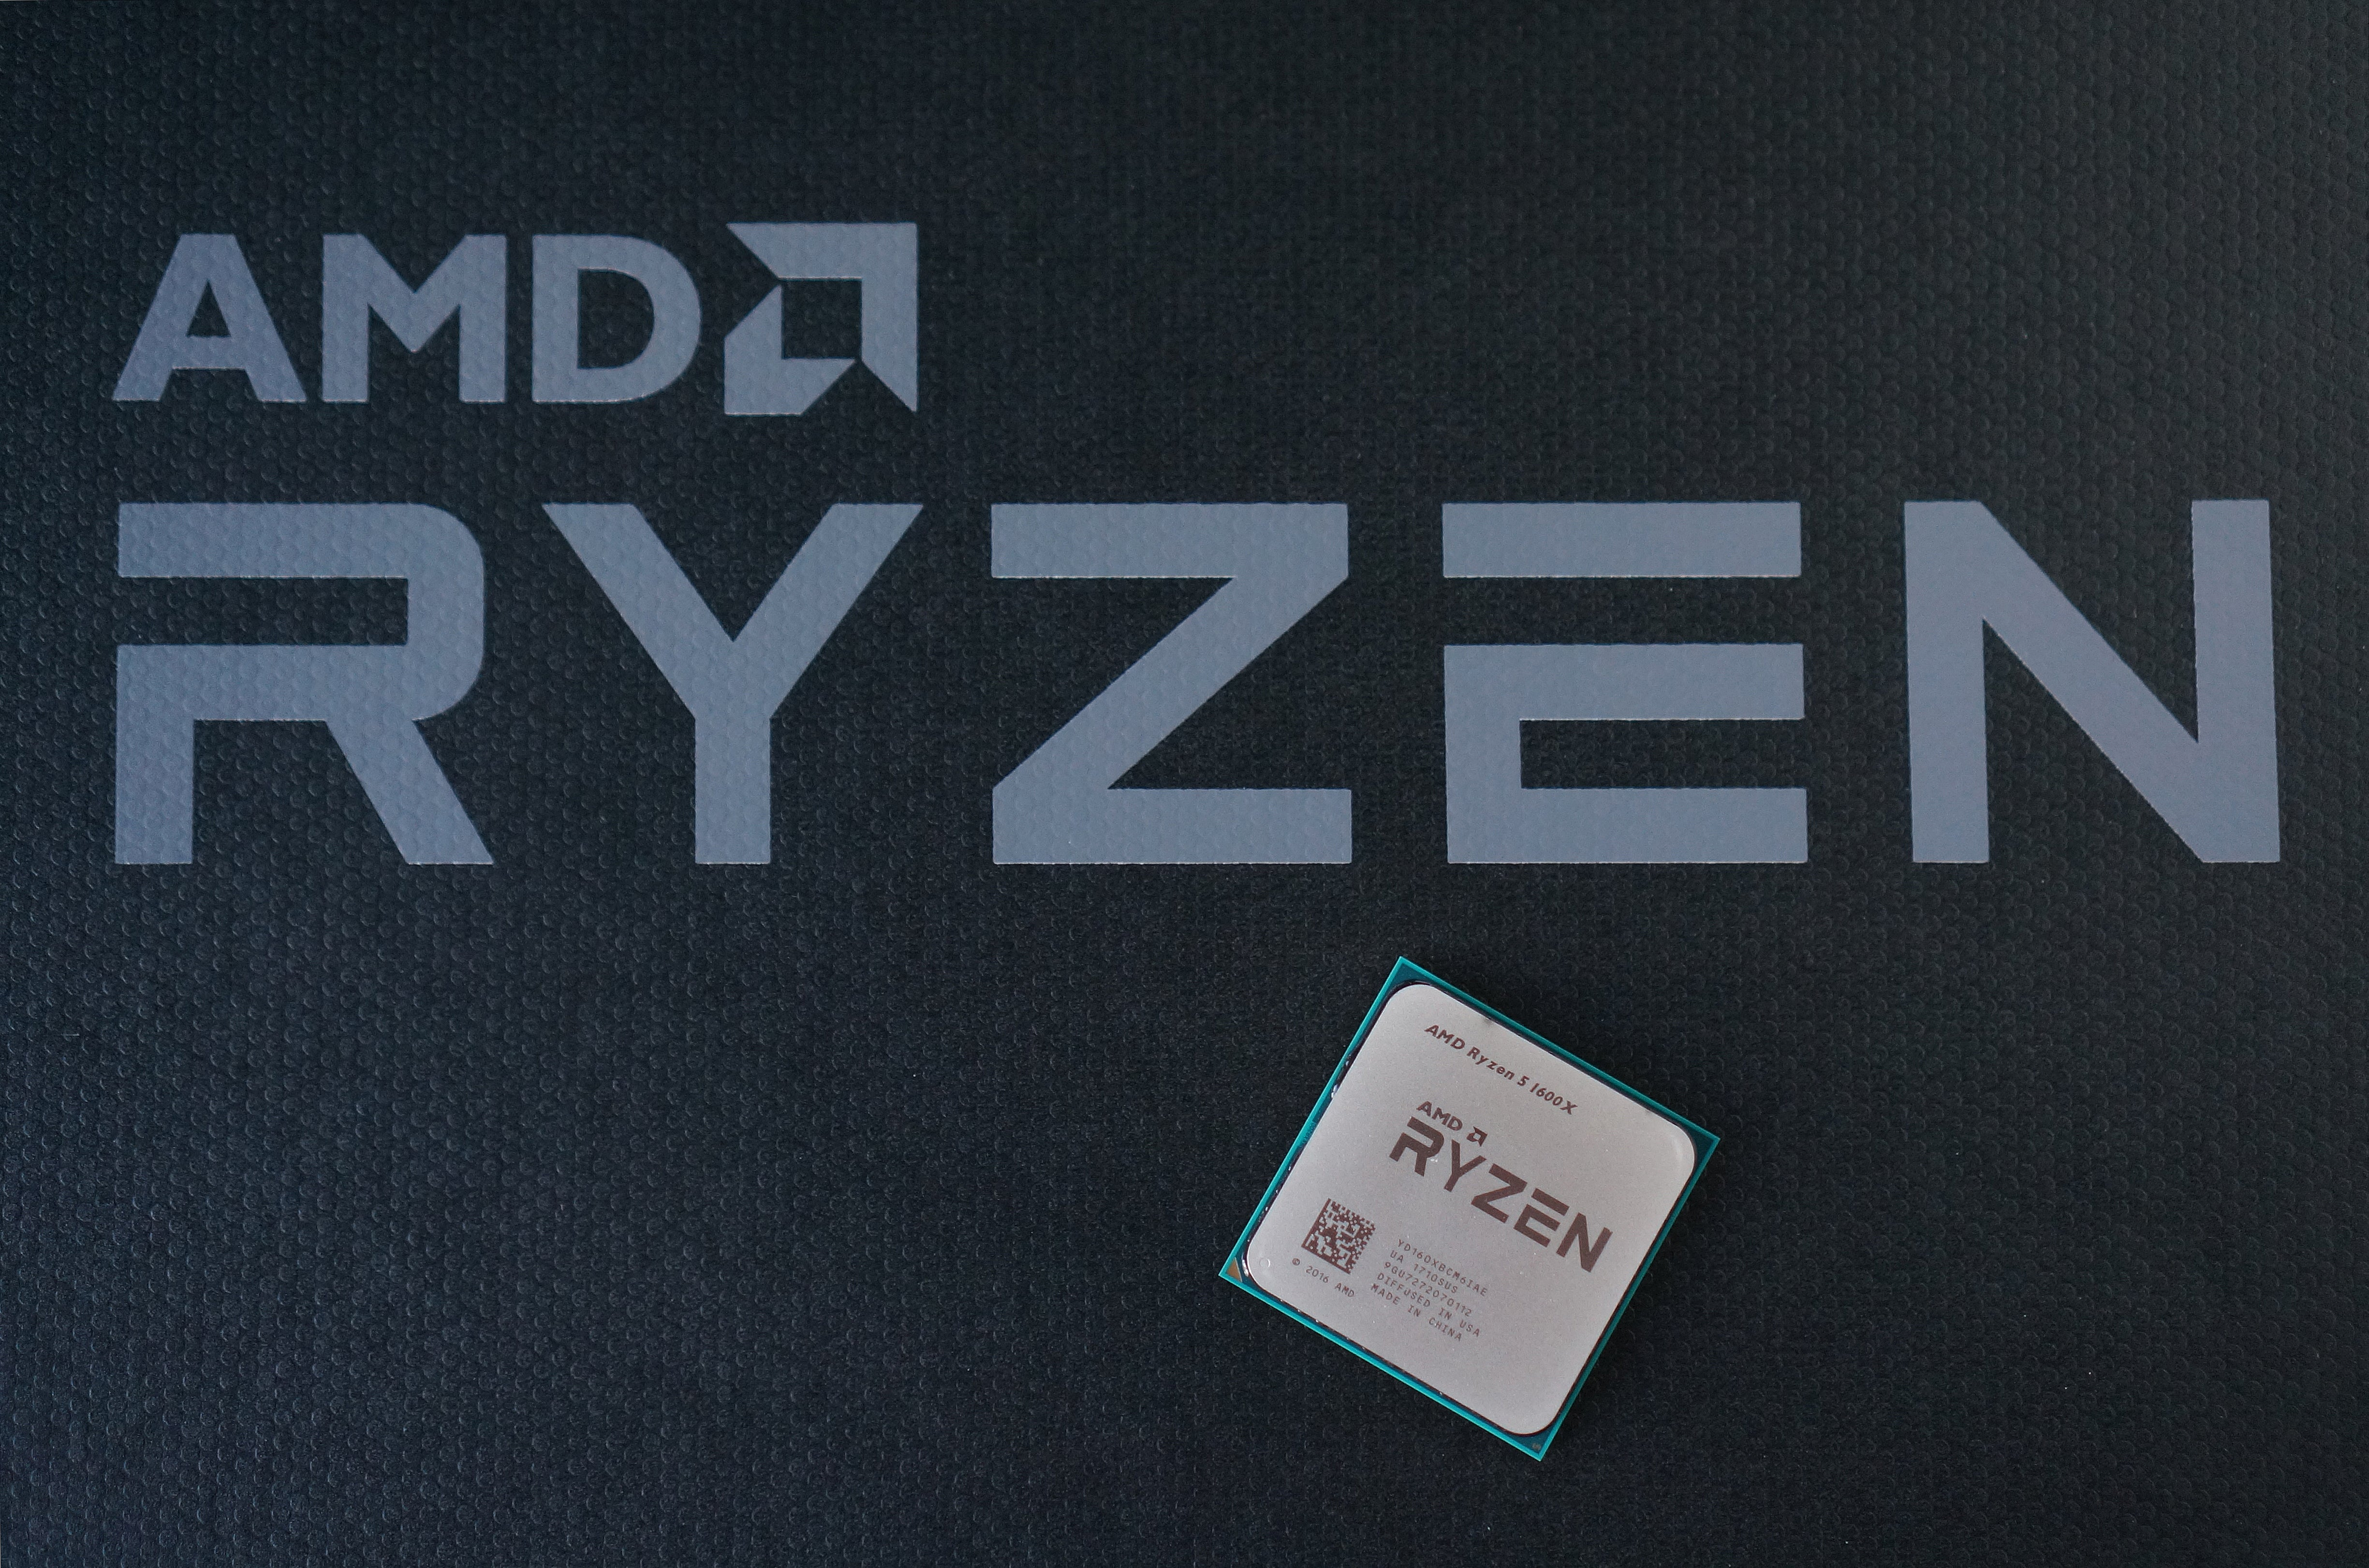 This Ryzen 5 1500x All Amd Pc Brings Compelling 8 Thread Gaming To R5 12